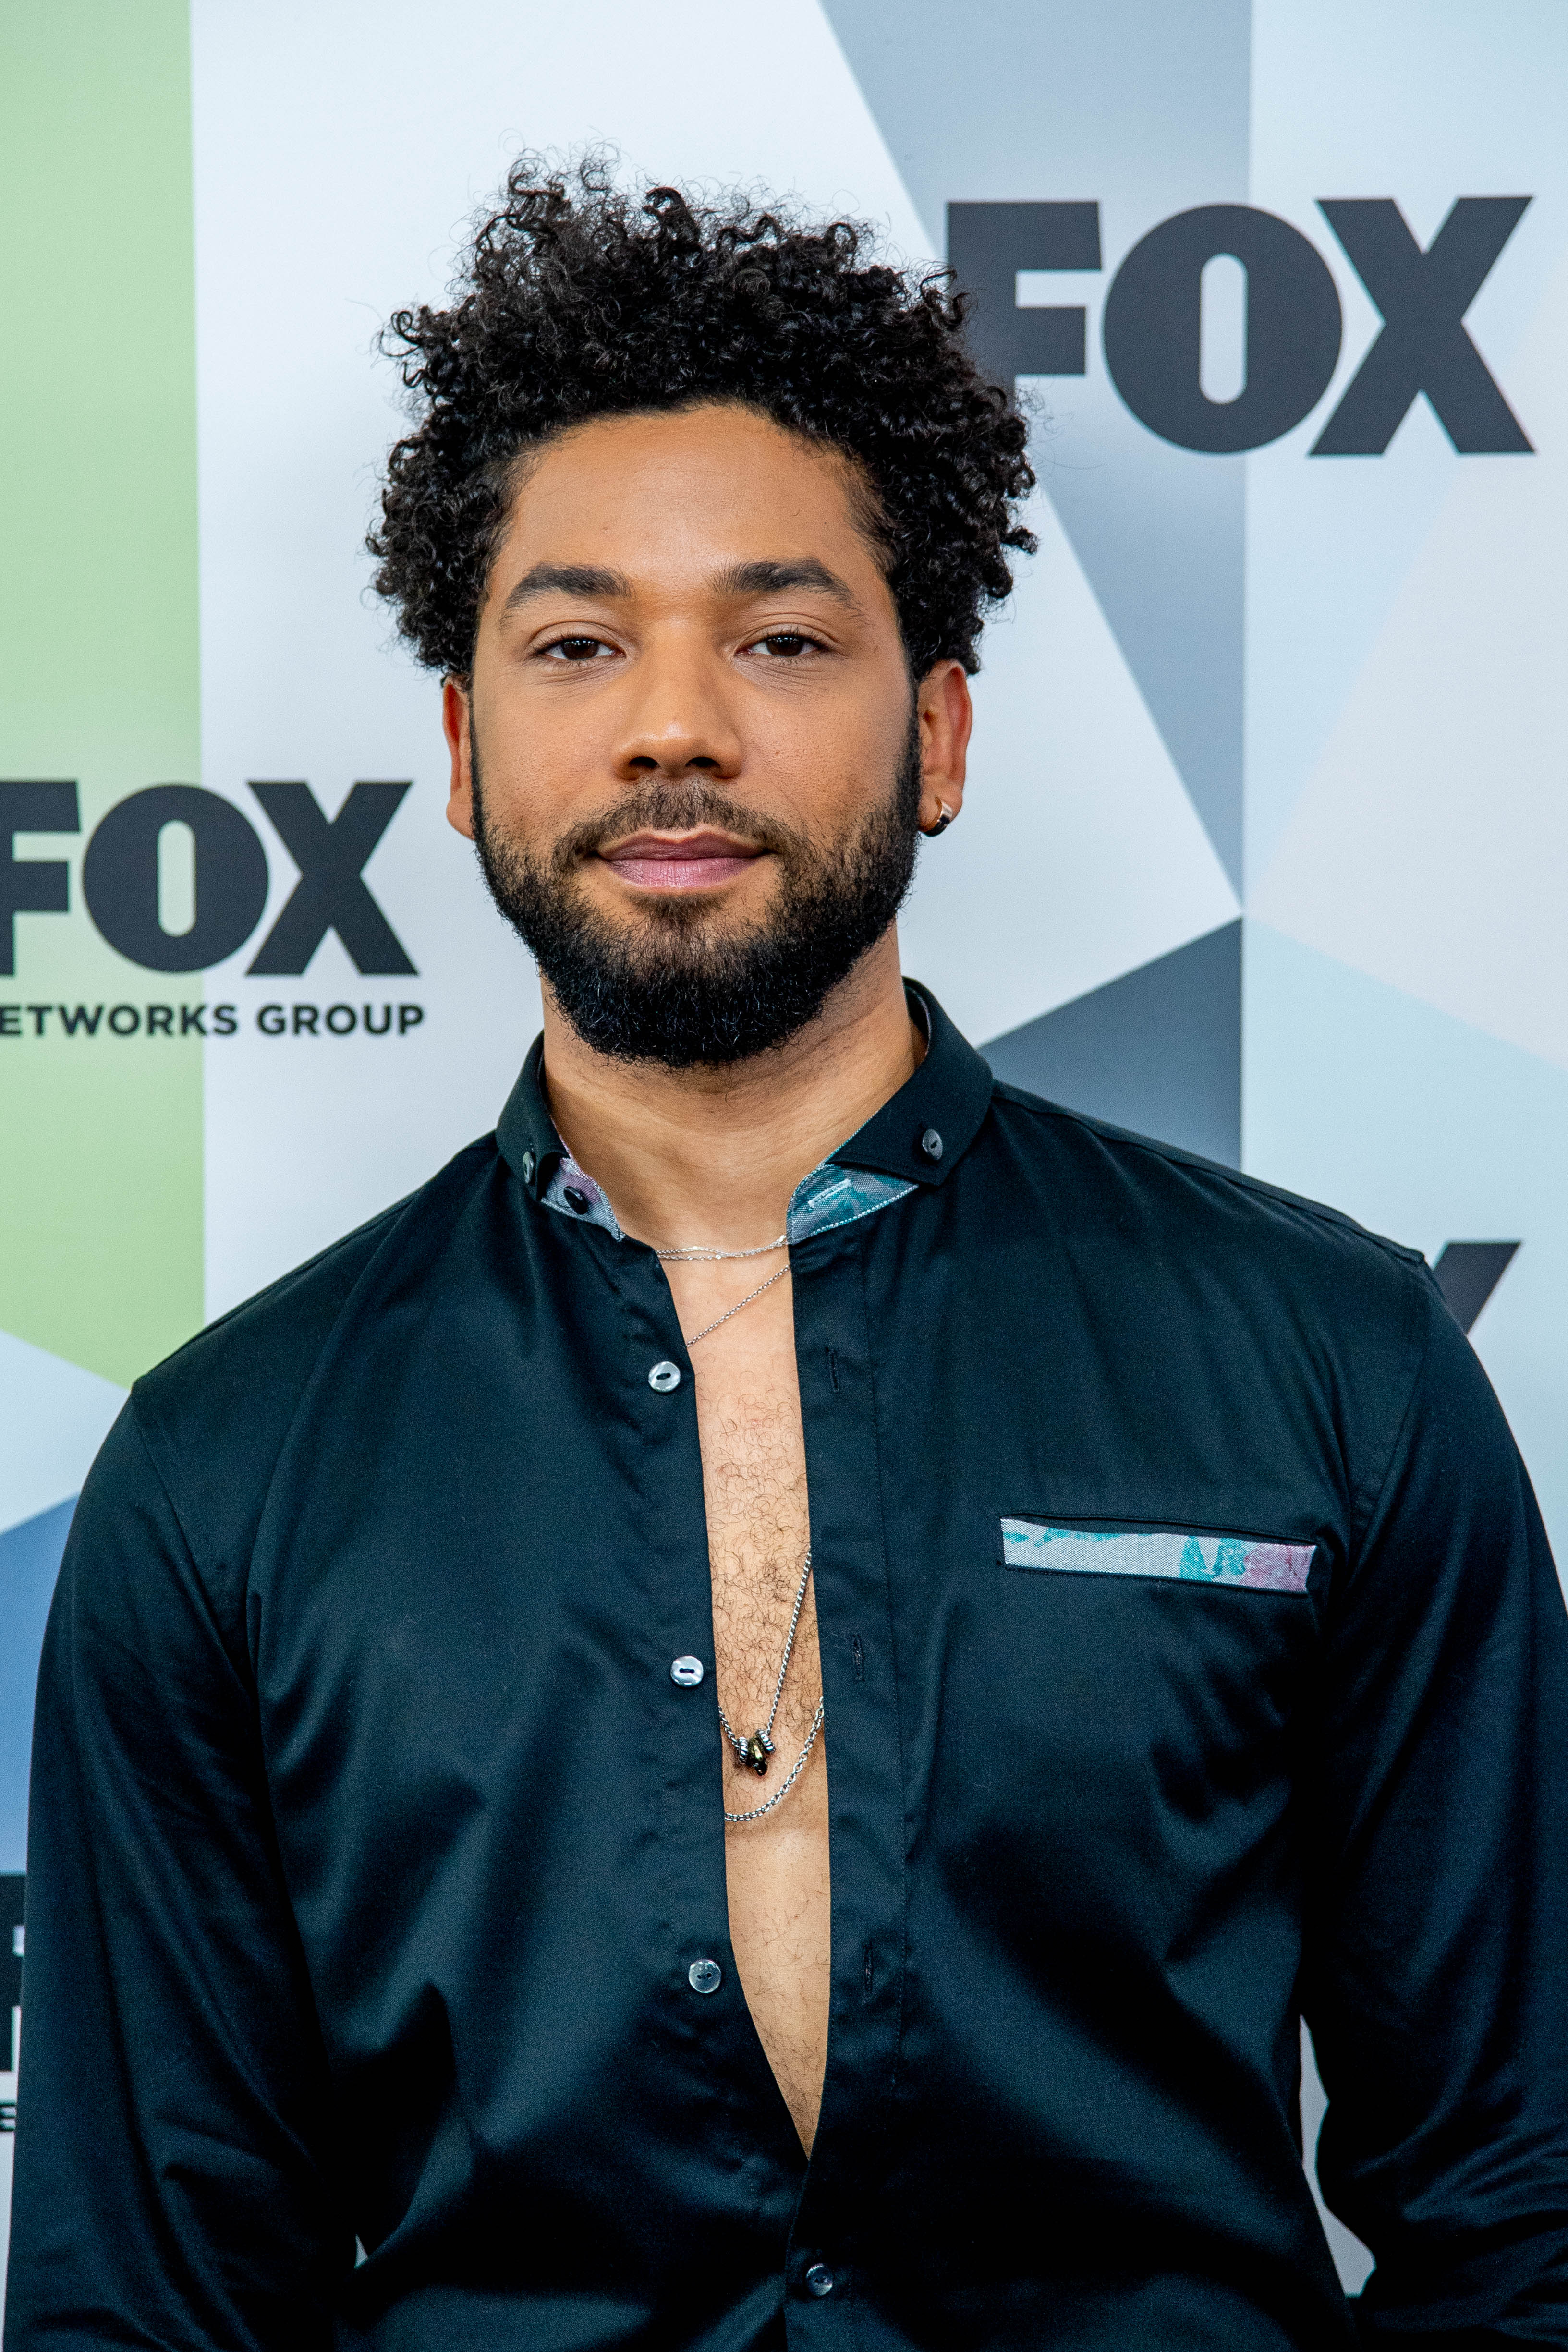 Jussie Smollett at a Fox event in May 2018 in New York. | Photo: Getty Images